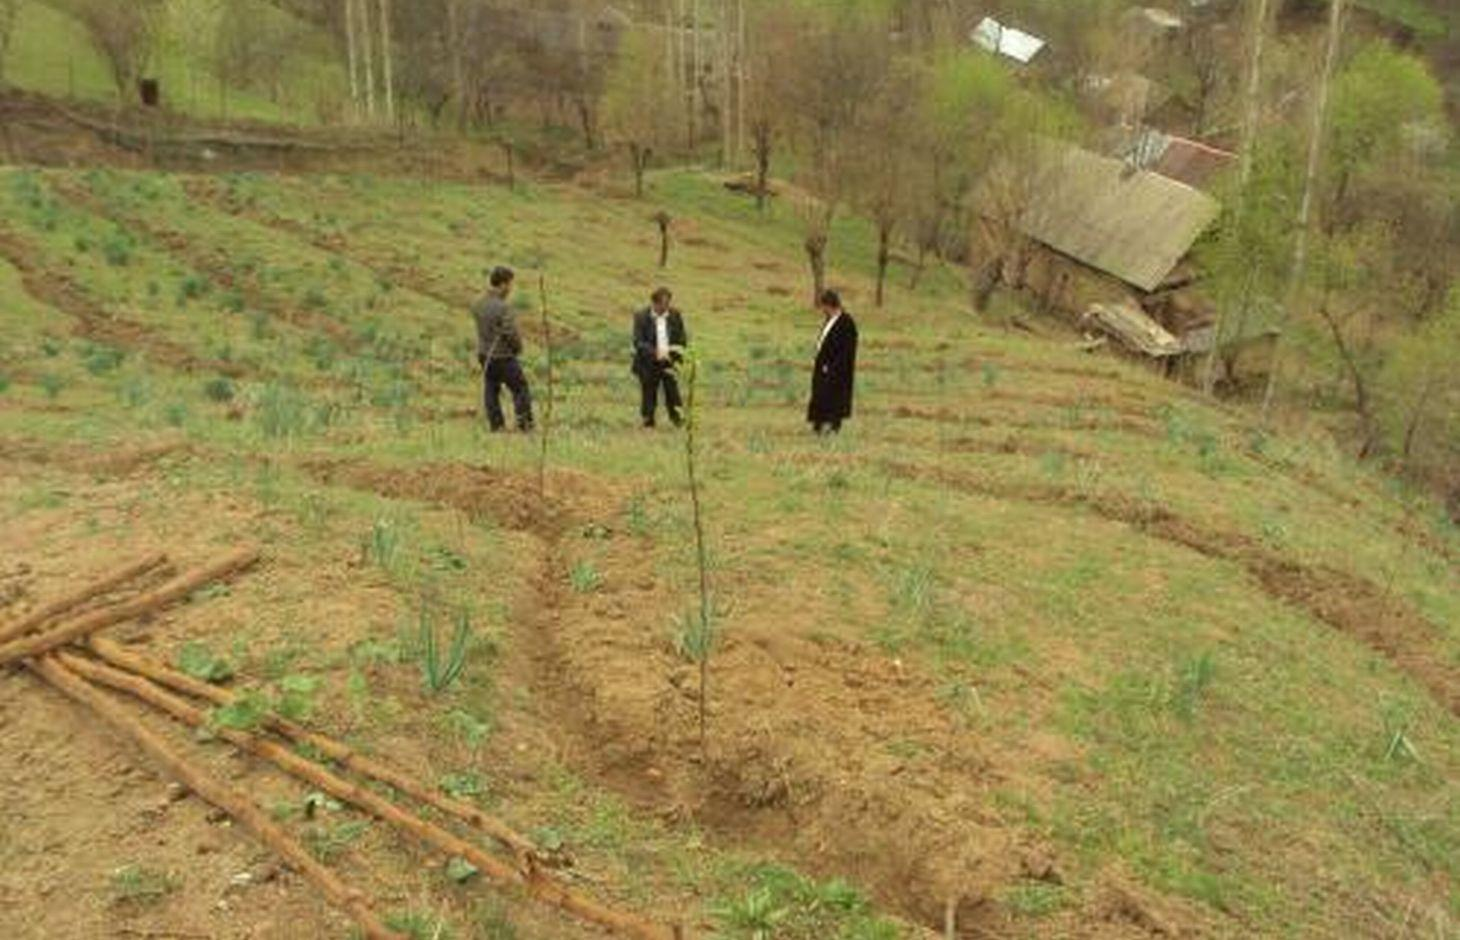 Planting of fruit trees on a steep slope above the village settlement.